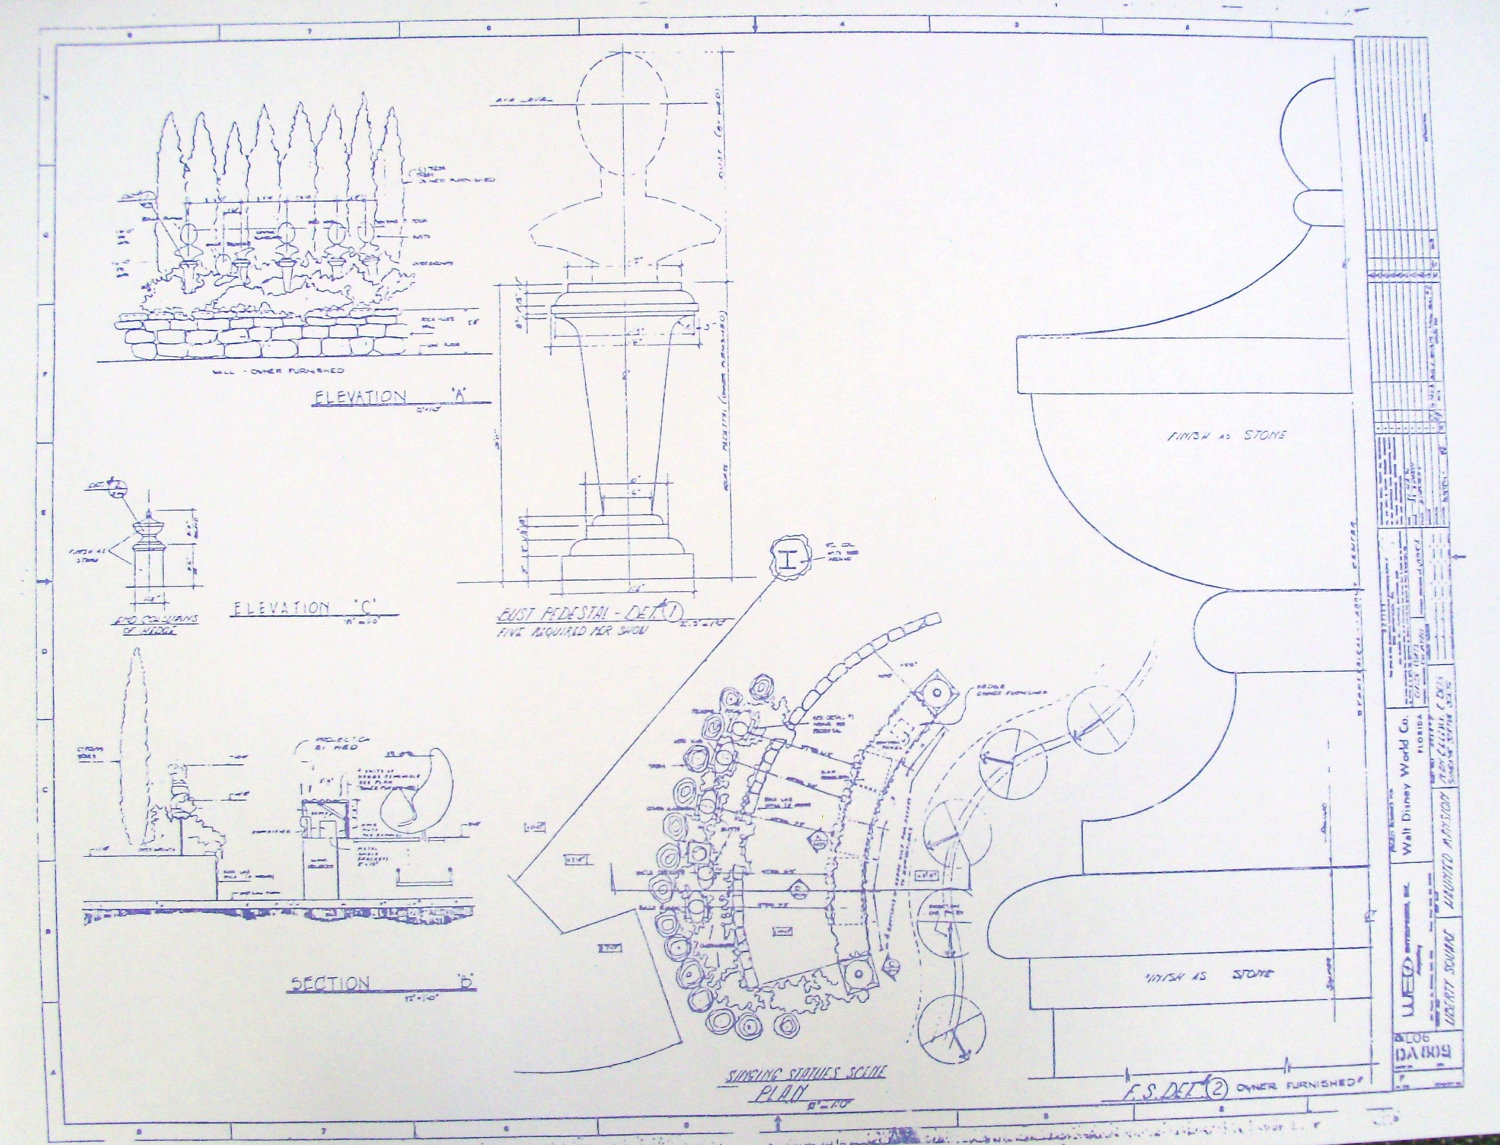 Haunted mansion blueprints for sale boing boing for Haunted mansion blueprints